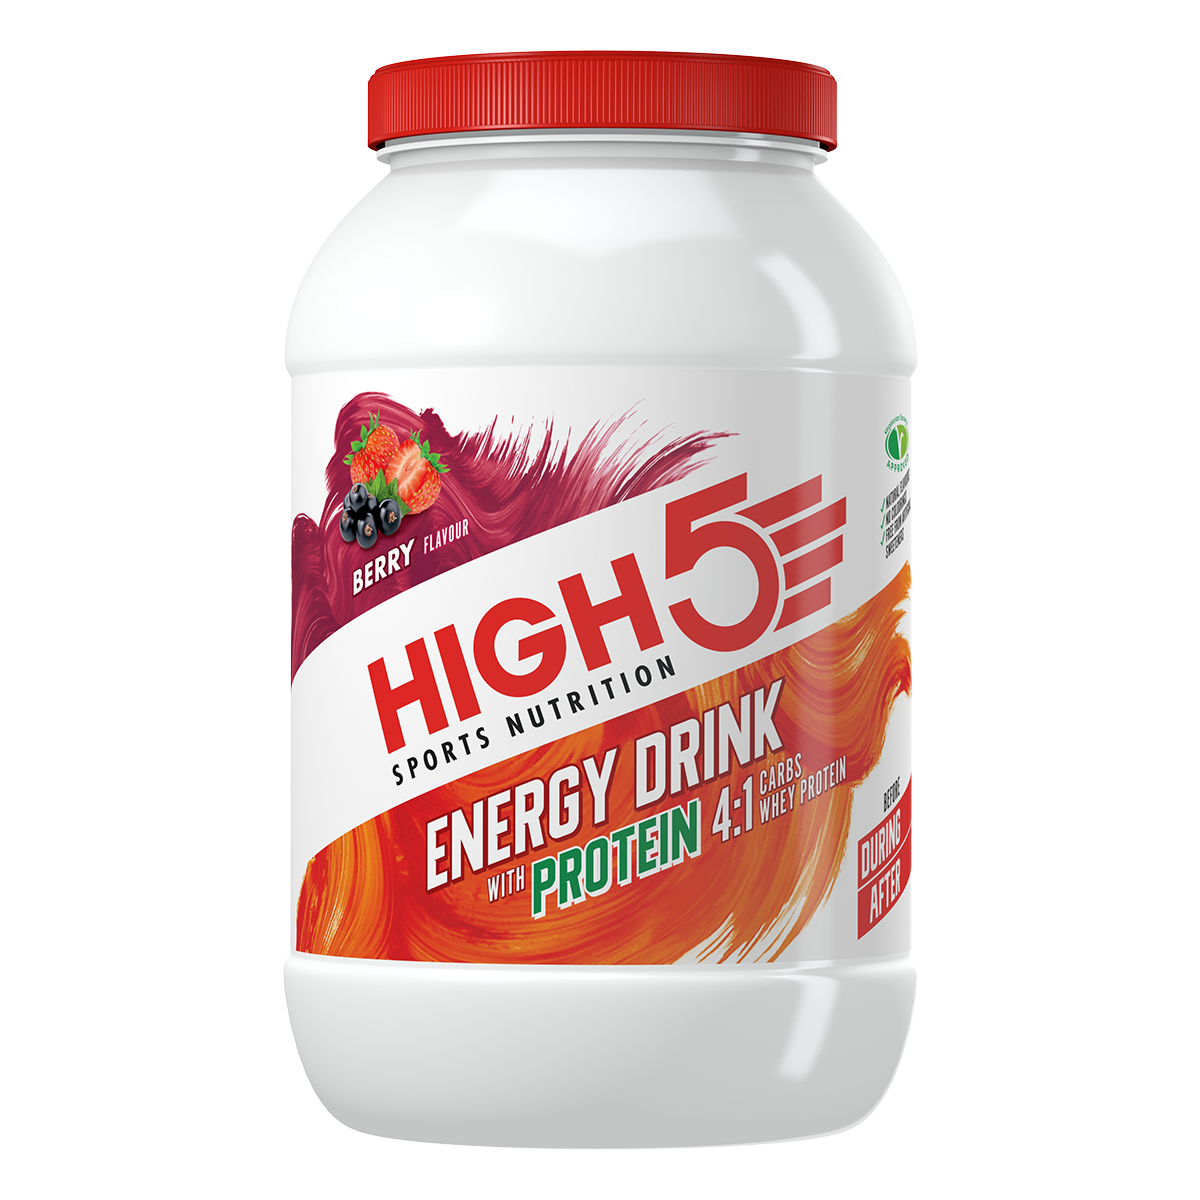 Energy-Drink-With-Protein_Berry_1600g_Front_RGB_1200x1200